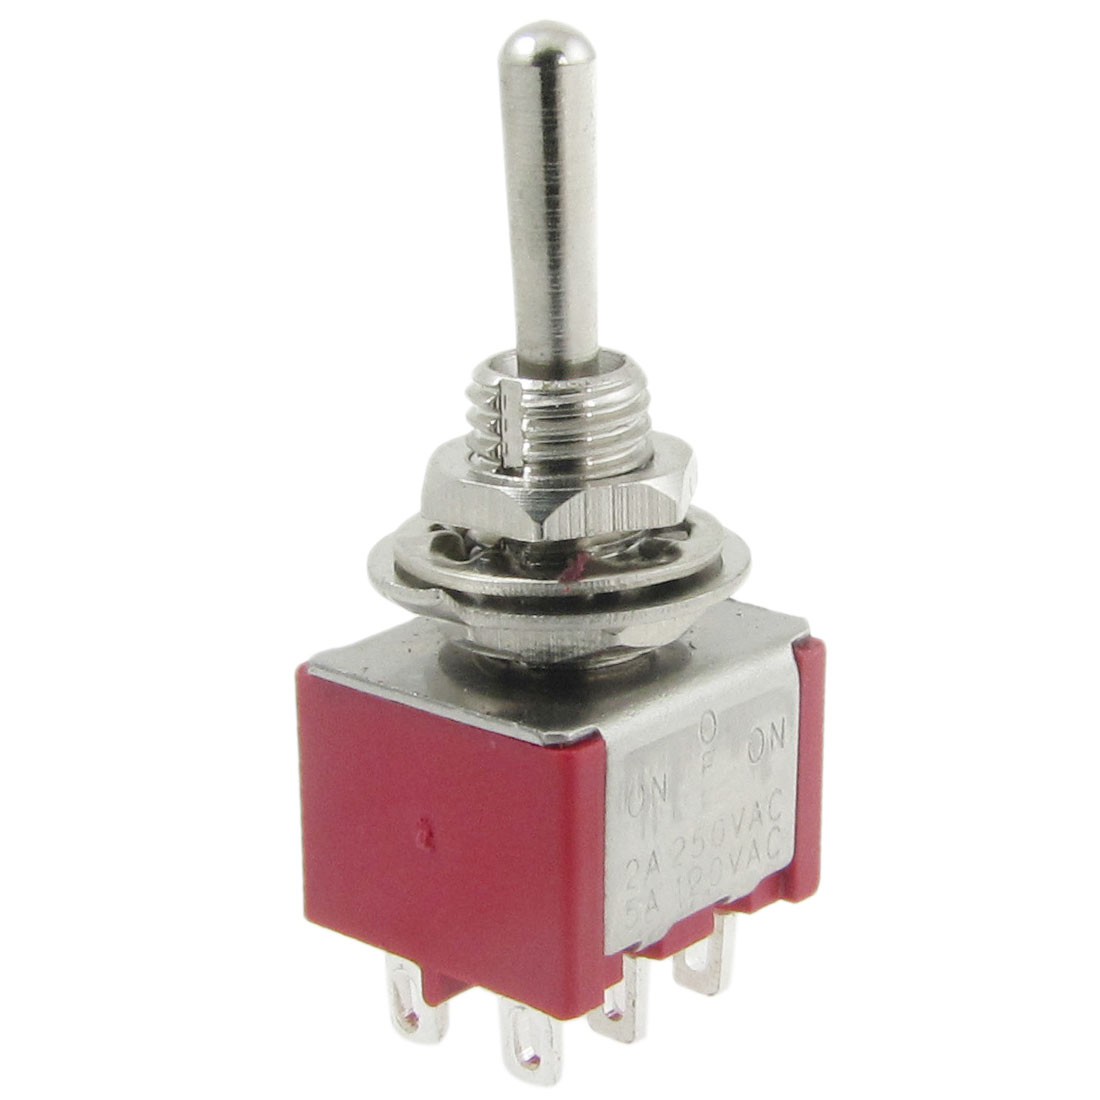 AC 250V 2A 120V 5A ON/OFF/ON 3 Position 6 Pins PDT Momentary Toggle Switch